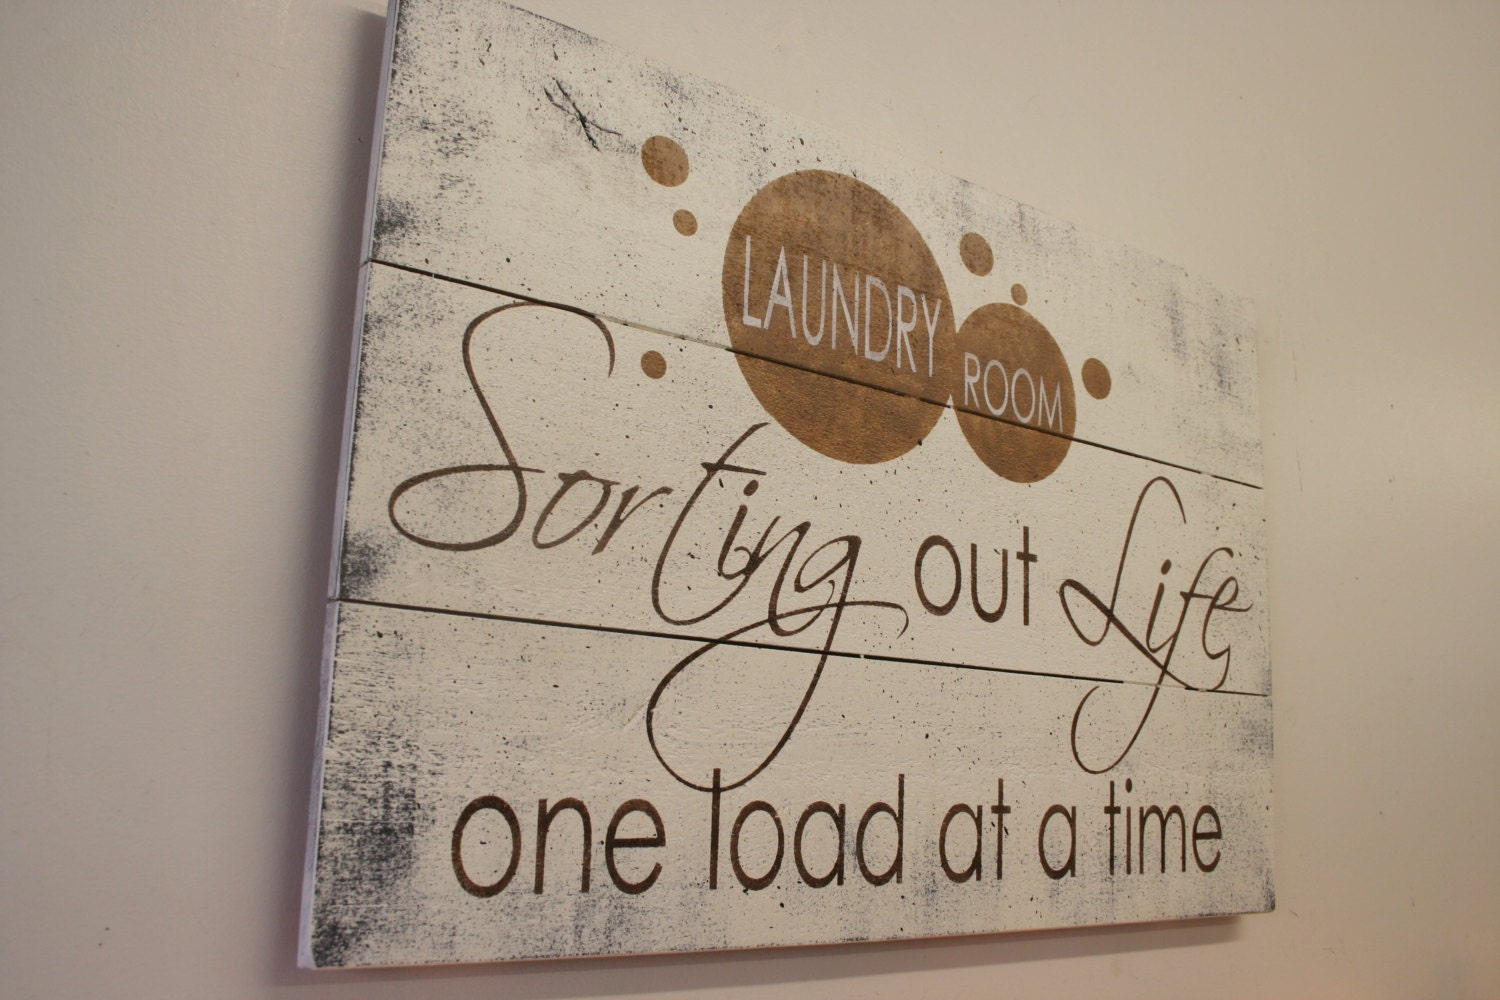 Wooden Laundry Sign Beauteous Sorting Out Life One Load At A Time Laundry Room Sign Wood Design Inspiration